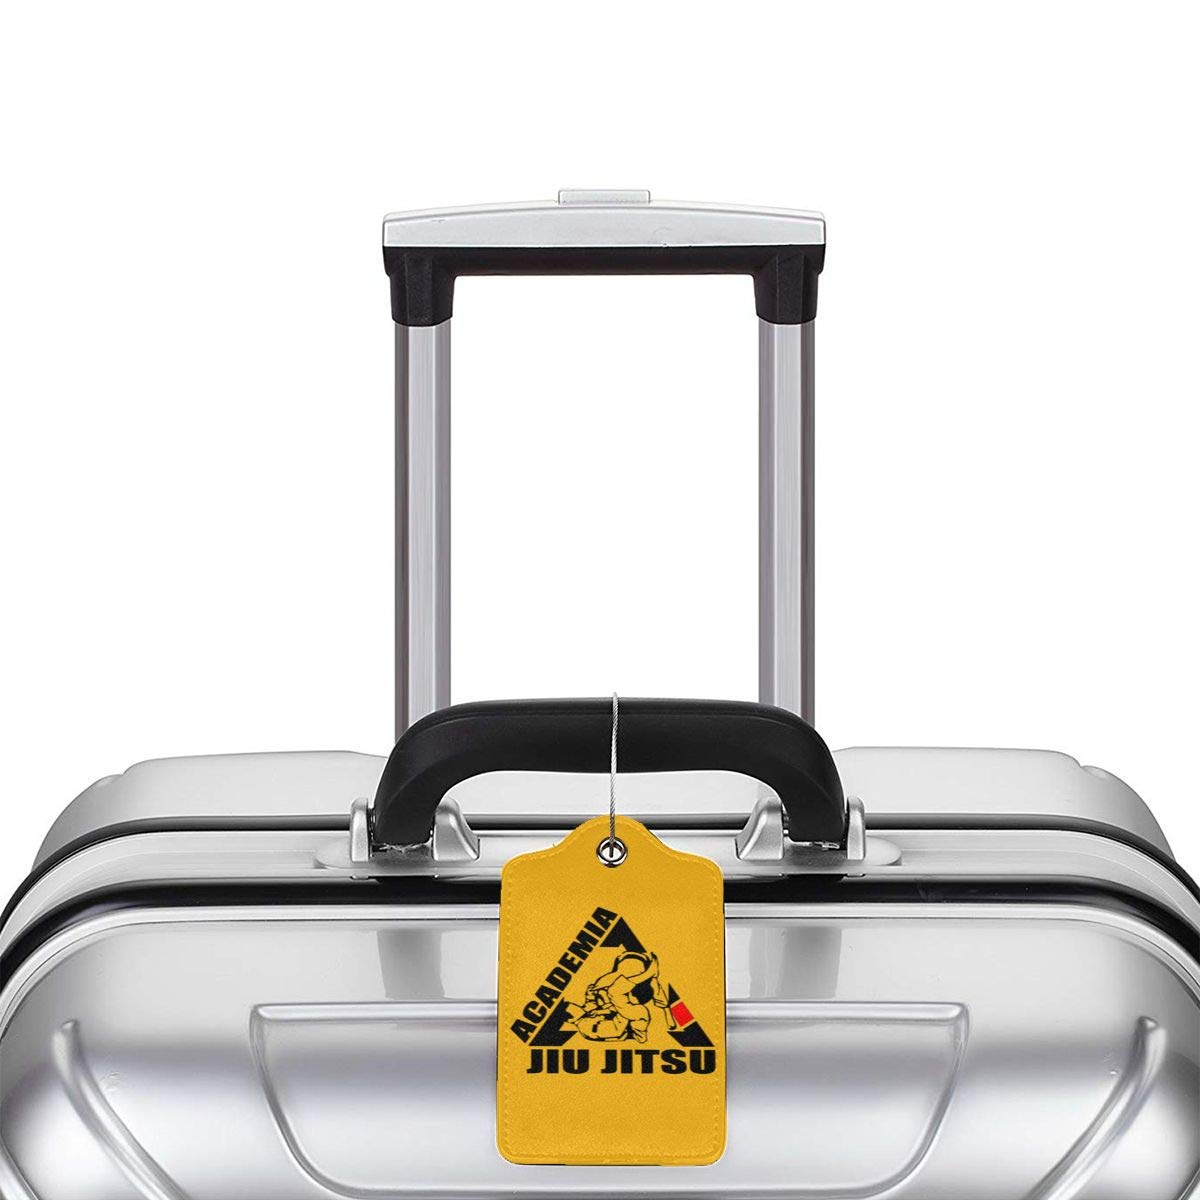 Luggage Tags Brazilian Jiu Jitsu Bjj With Full Back Privacy Cover With Round Steel Loops